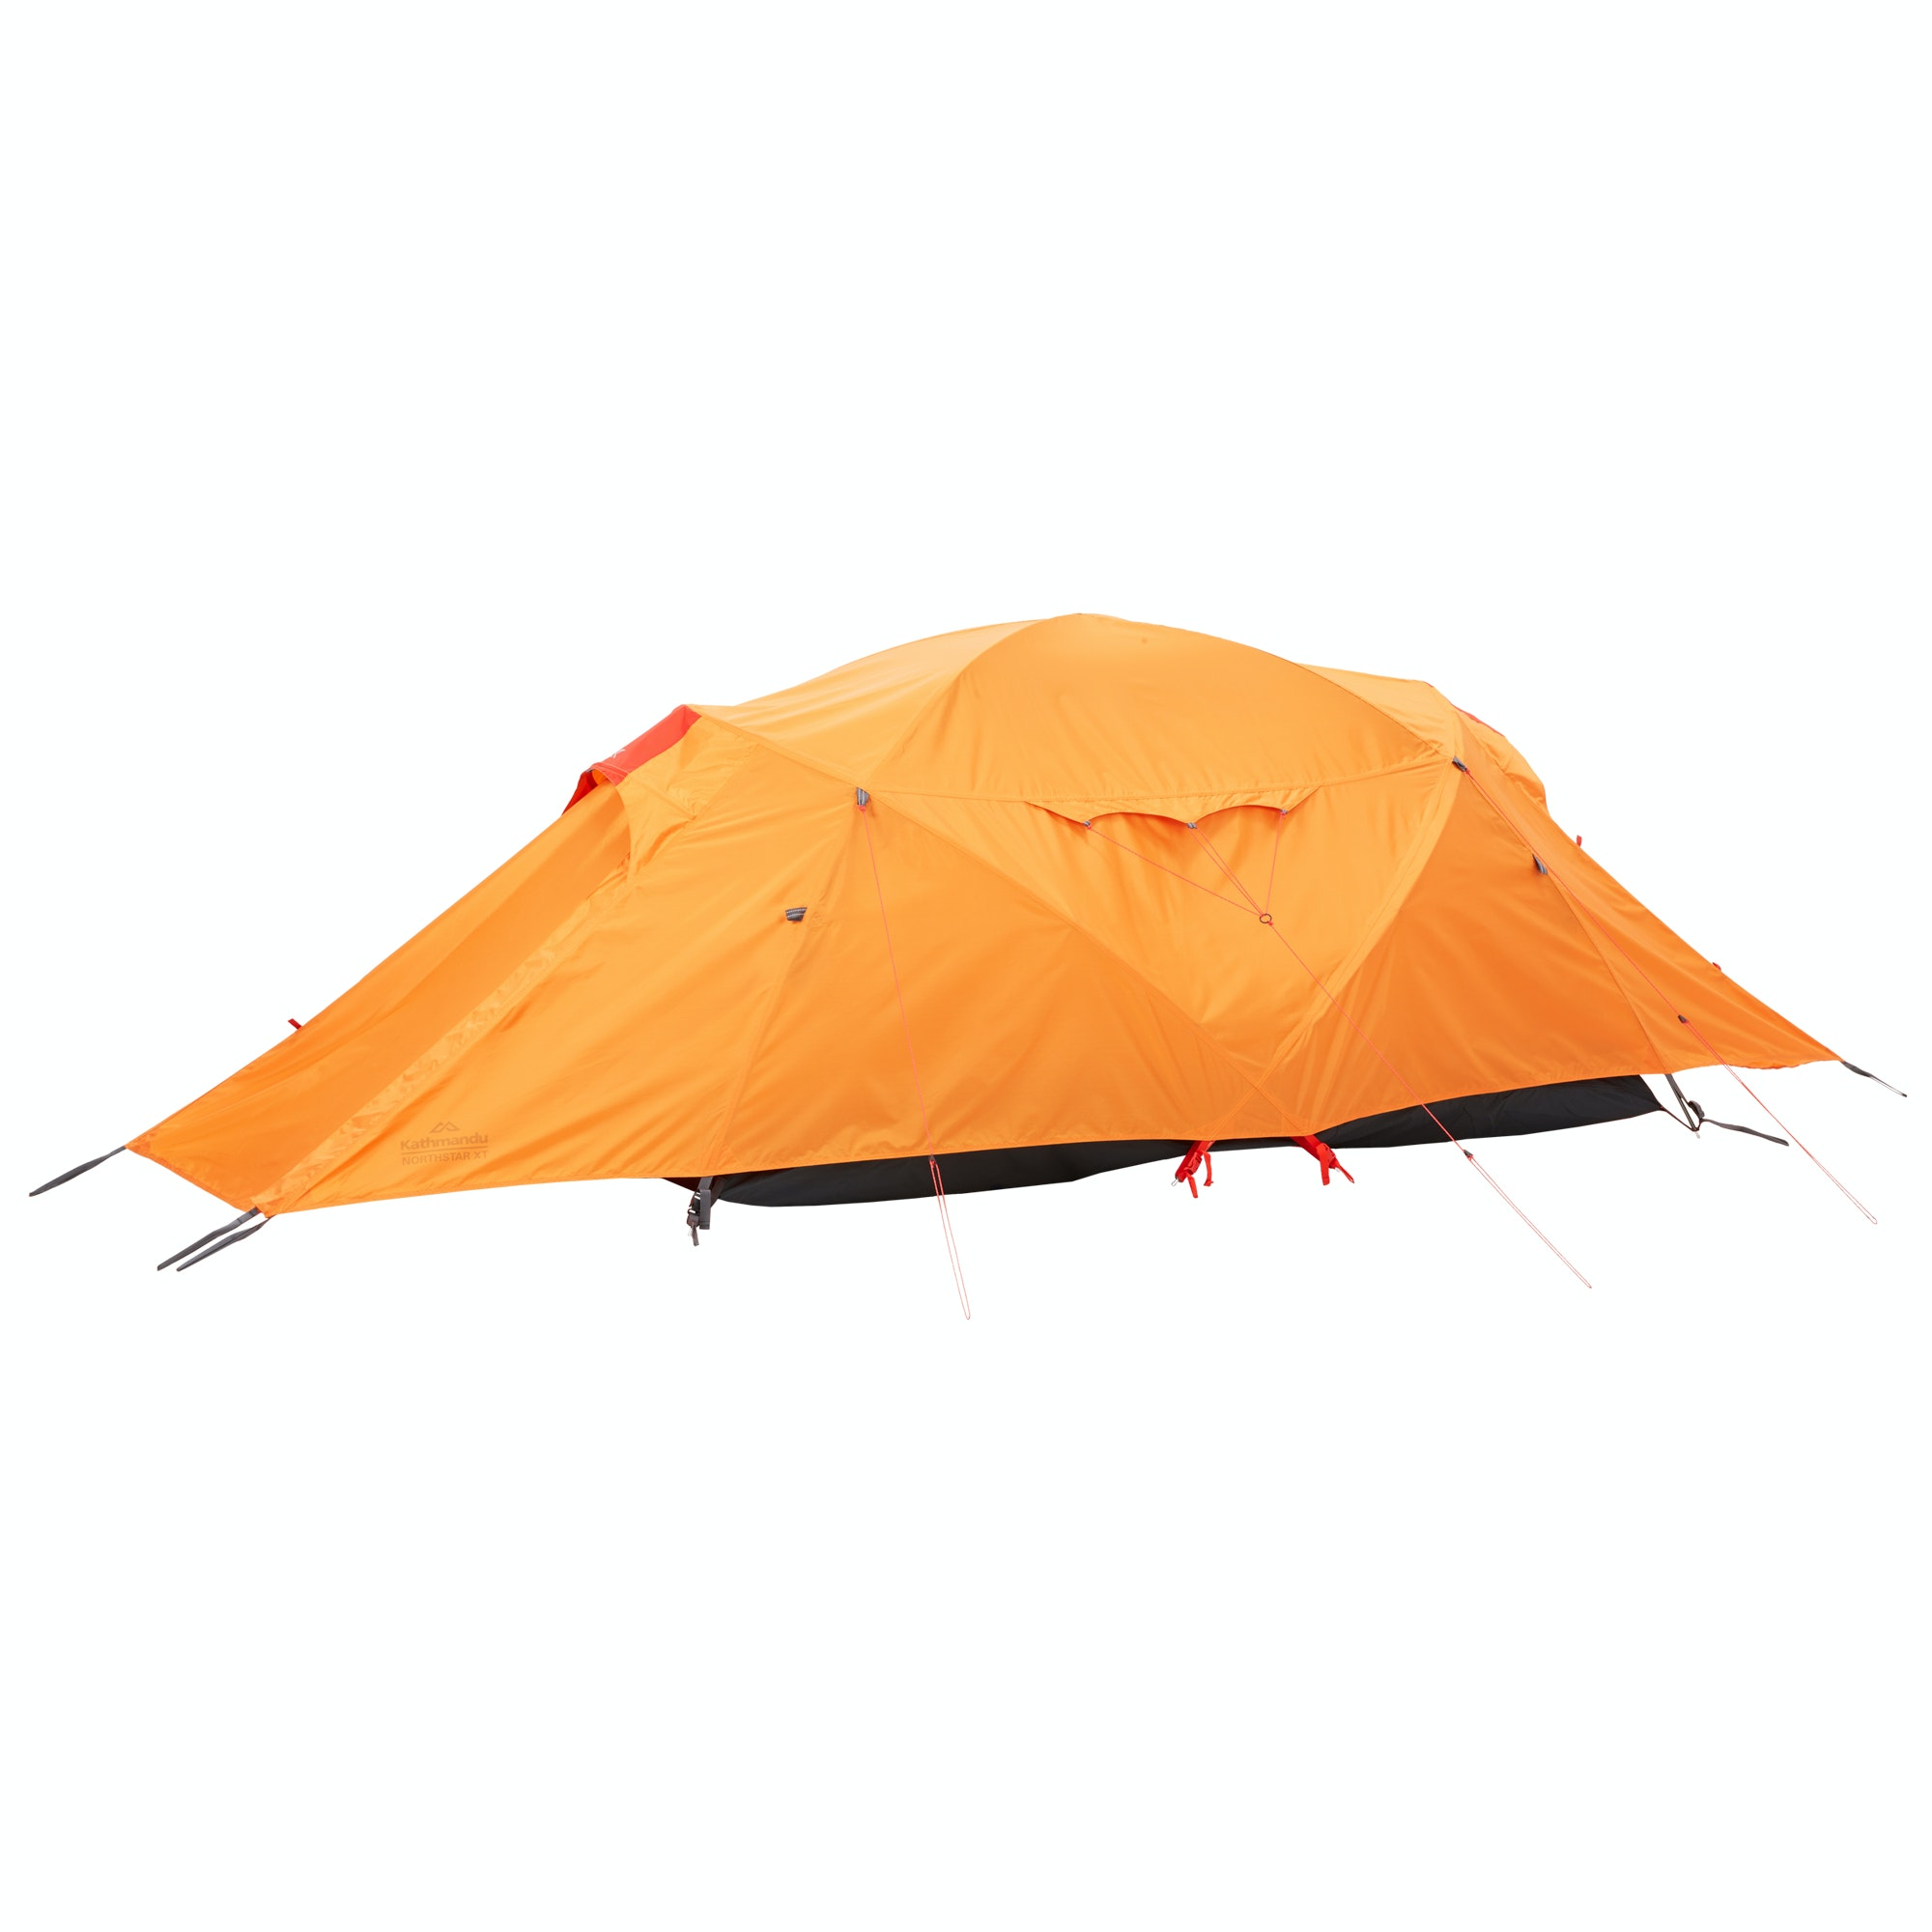 Clearance  sc 1 st  Kathmandu & North Star XT 2 Person Tent - Orange